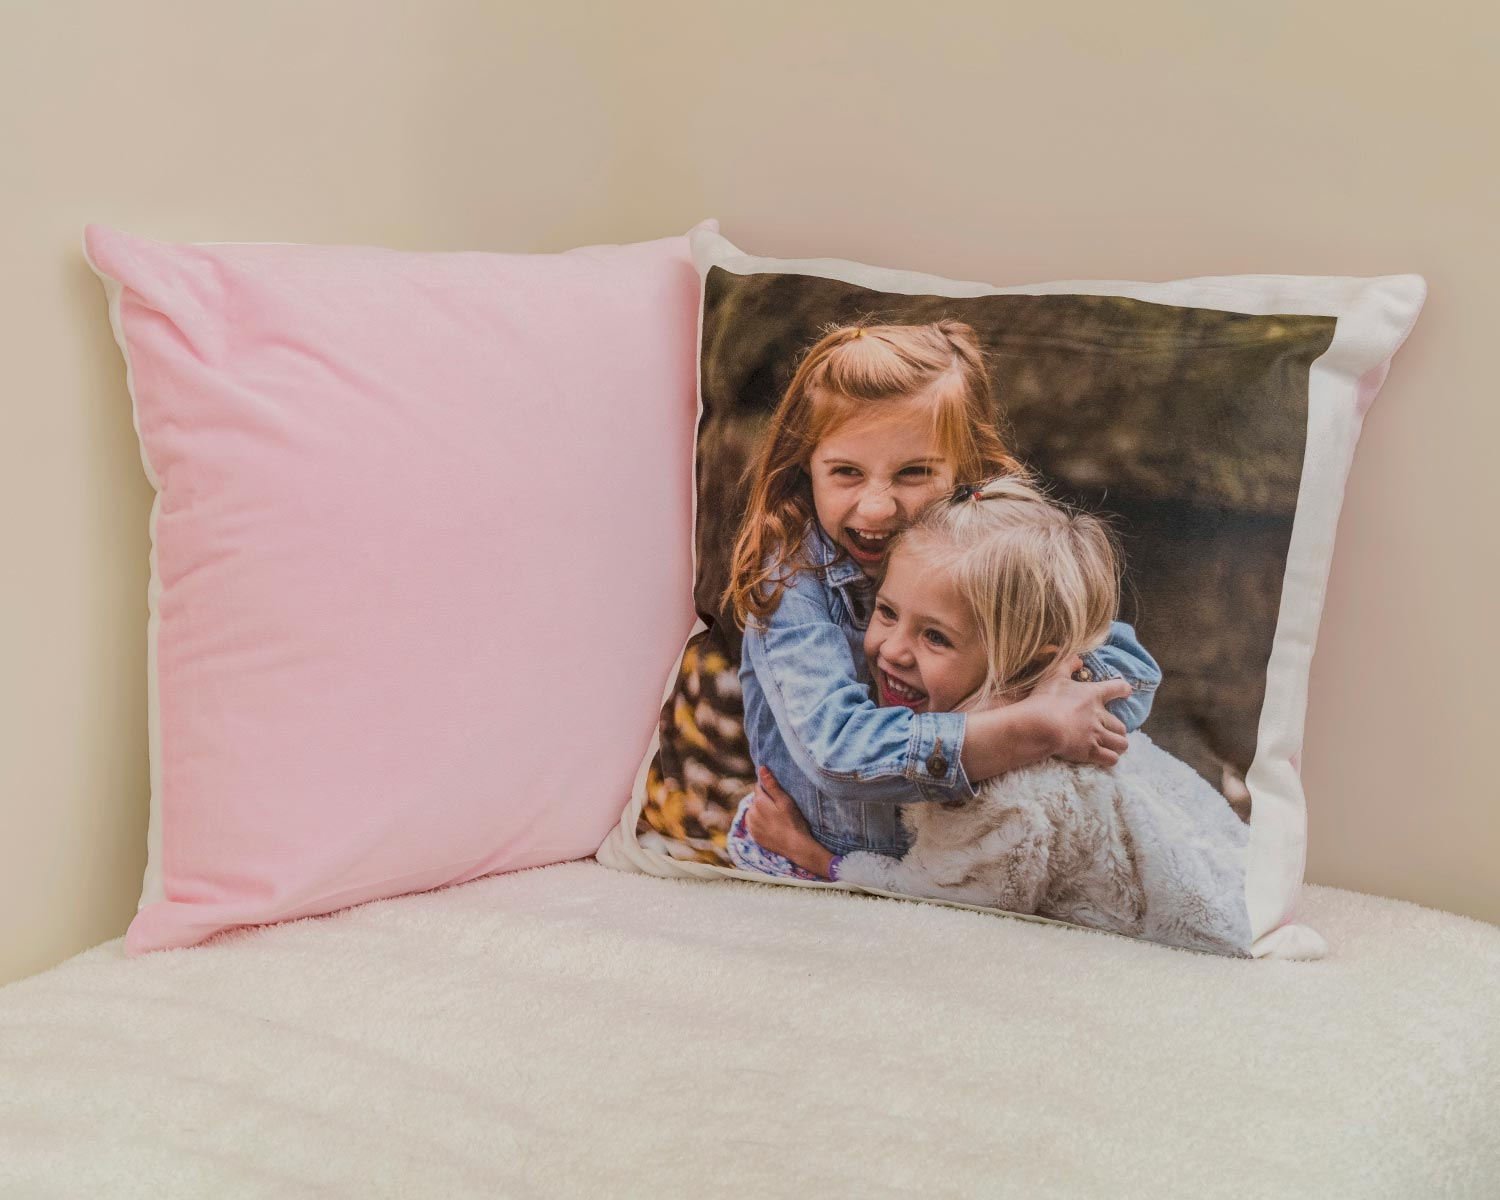 Pink soft photo cushion